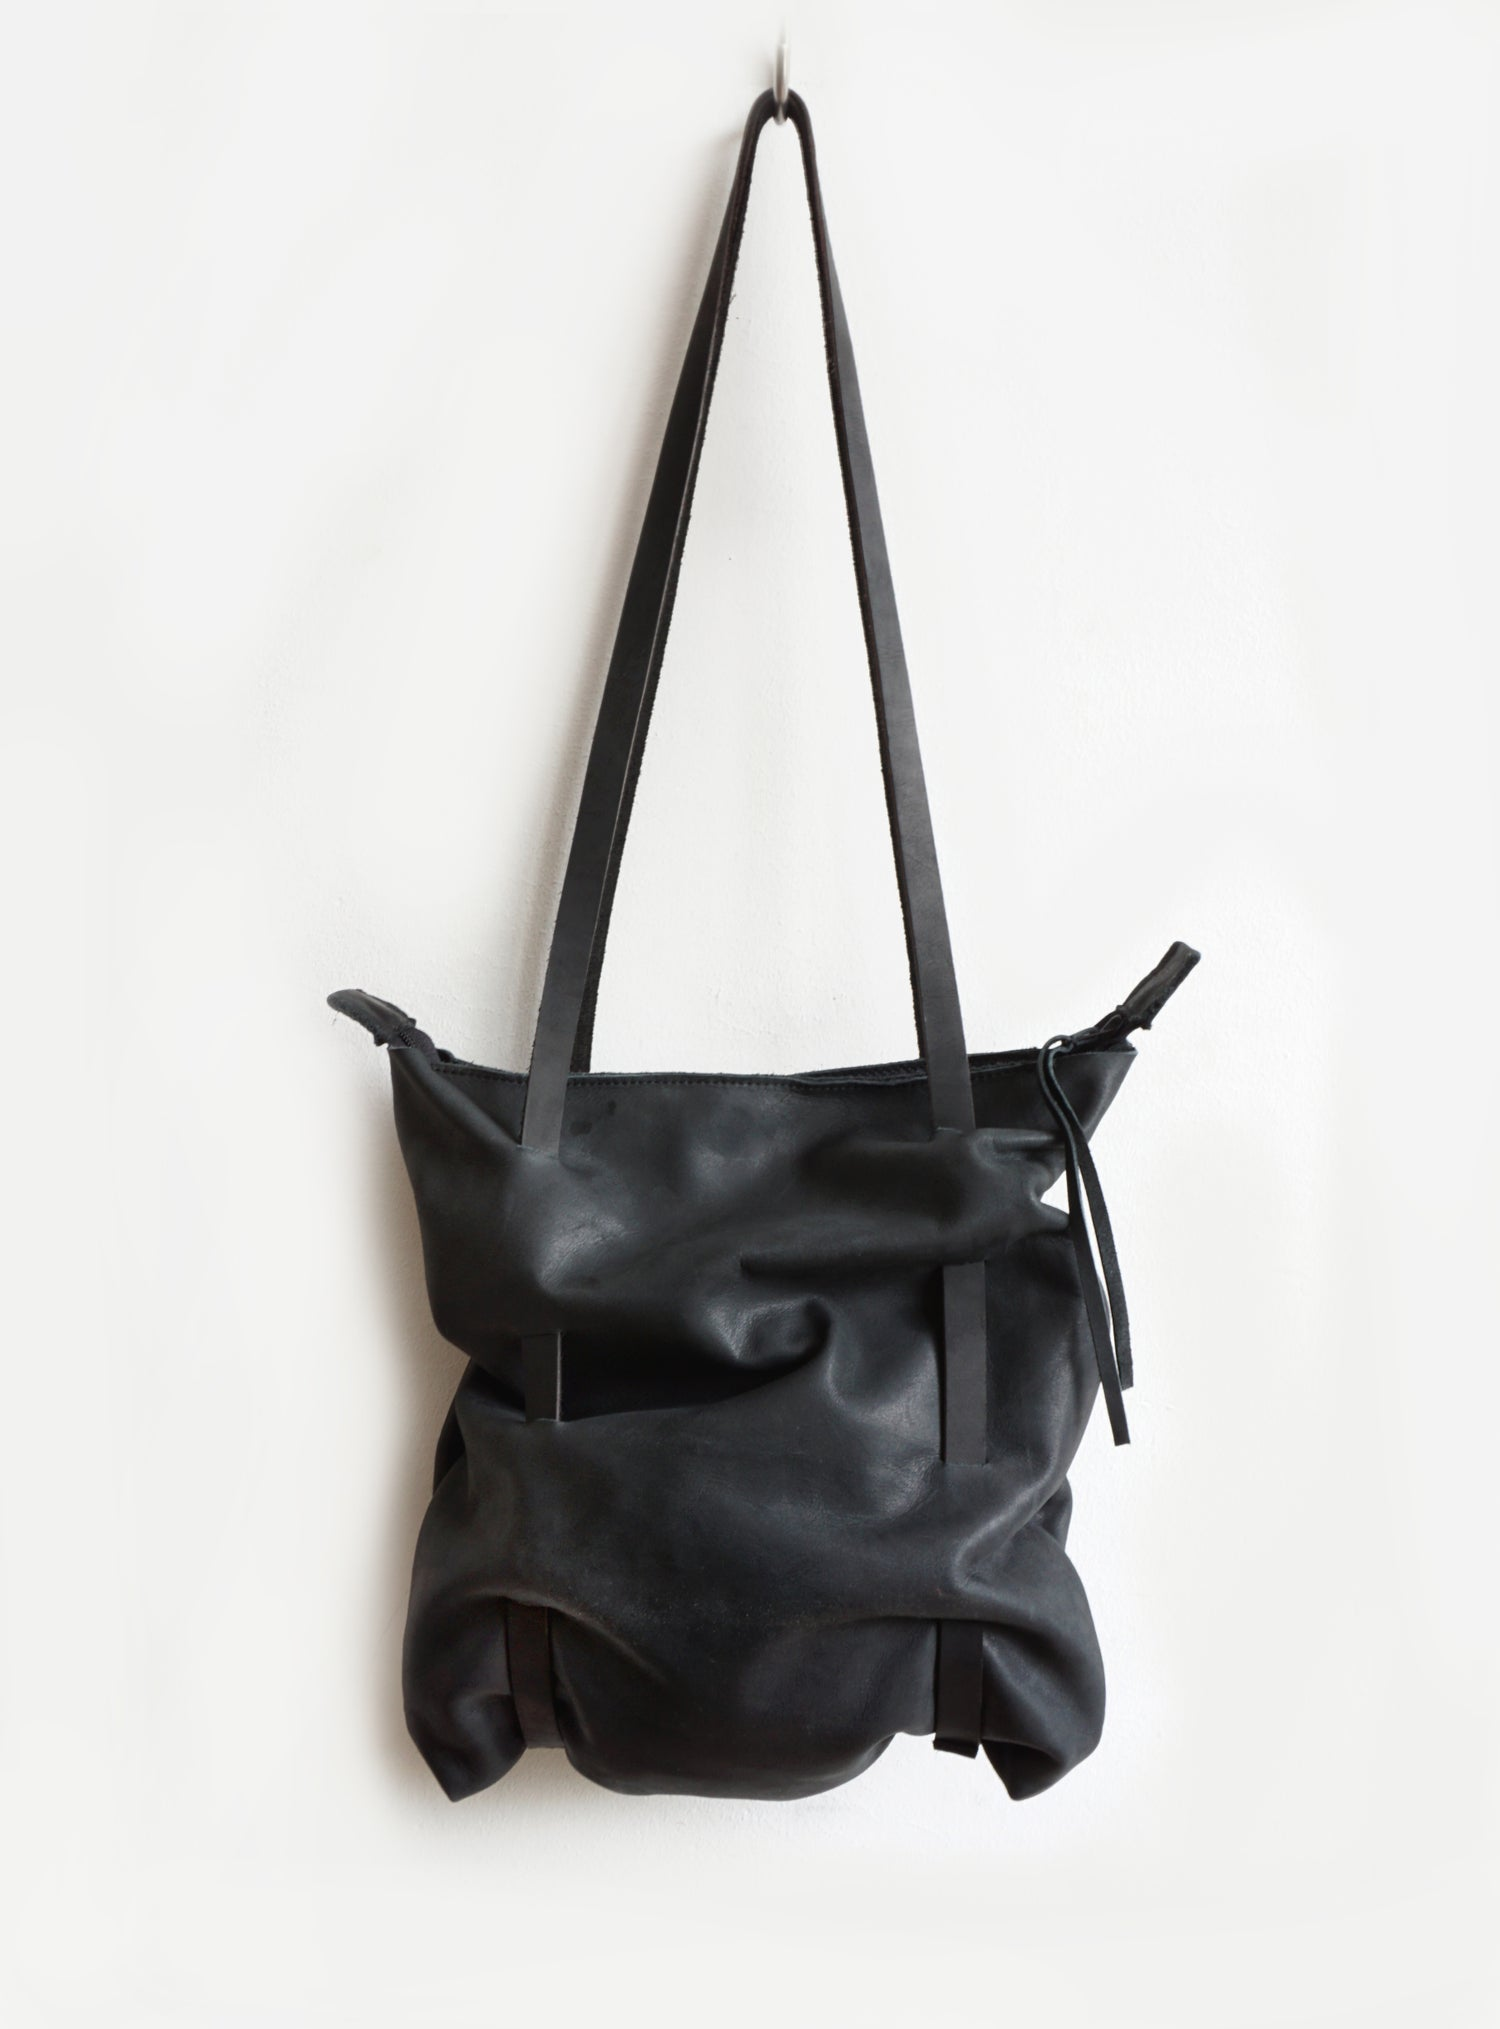 Image of Top Zipperd Black Leather Bag, Eco Leather Crunch Bag